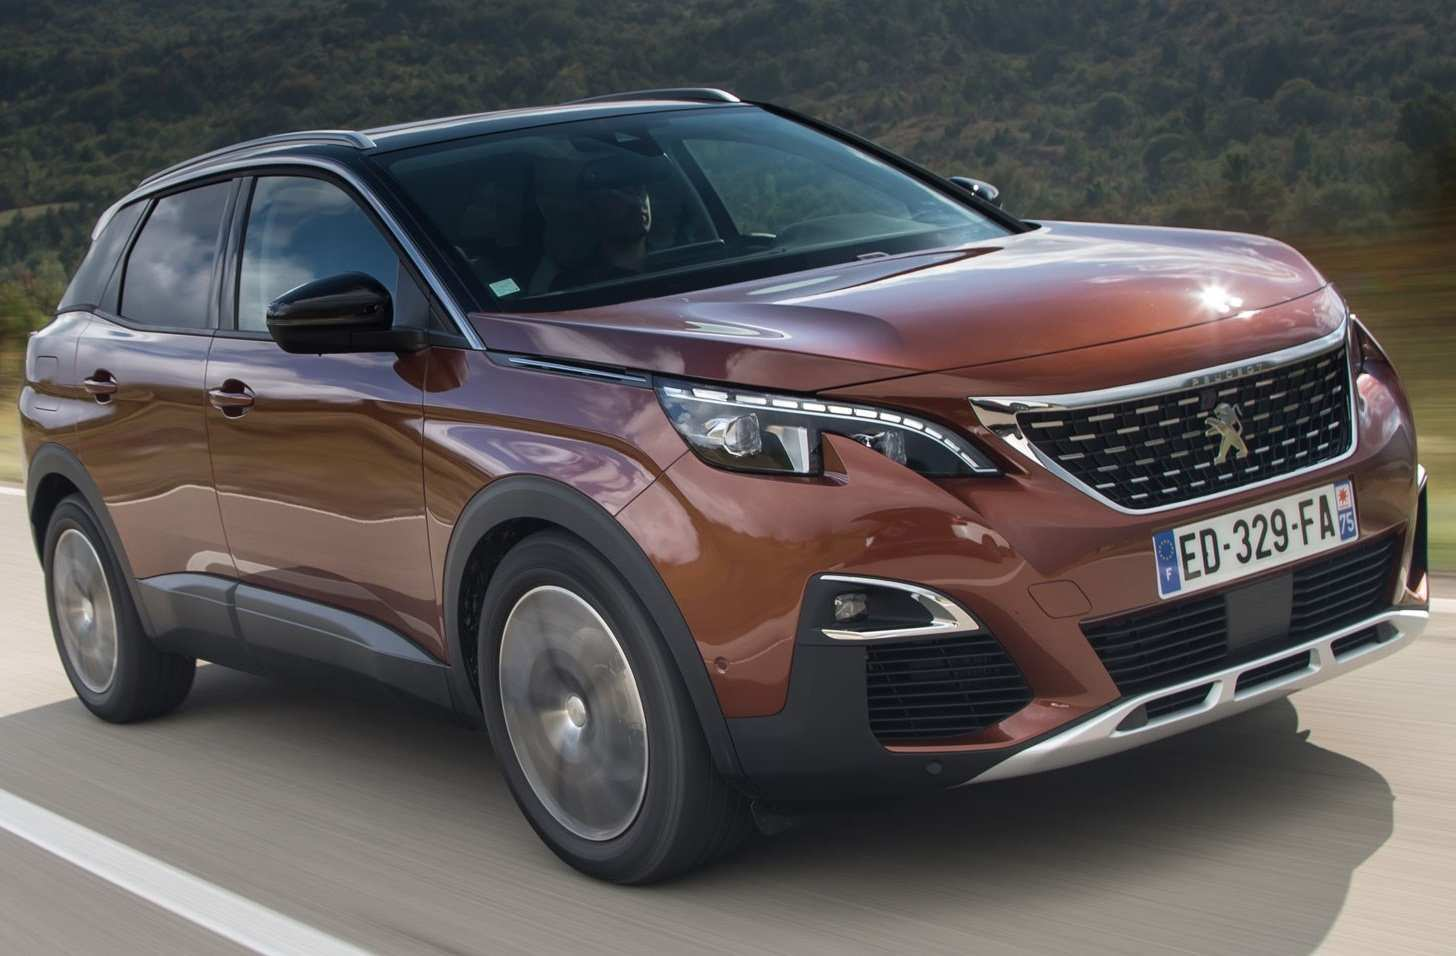 77 The Peugeot Bis 2020 Style for Peugeot Bis 2020